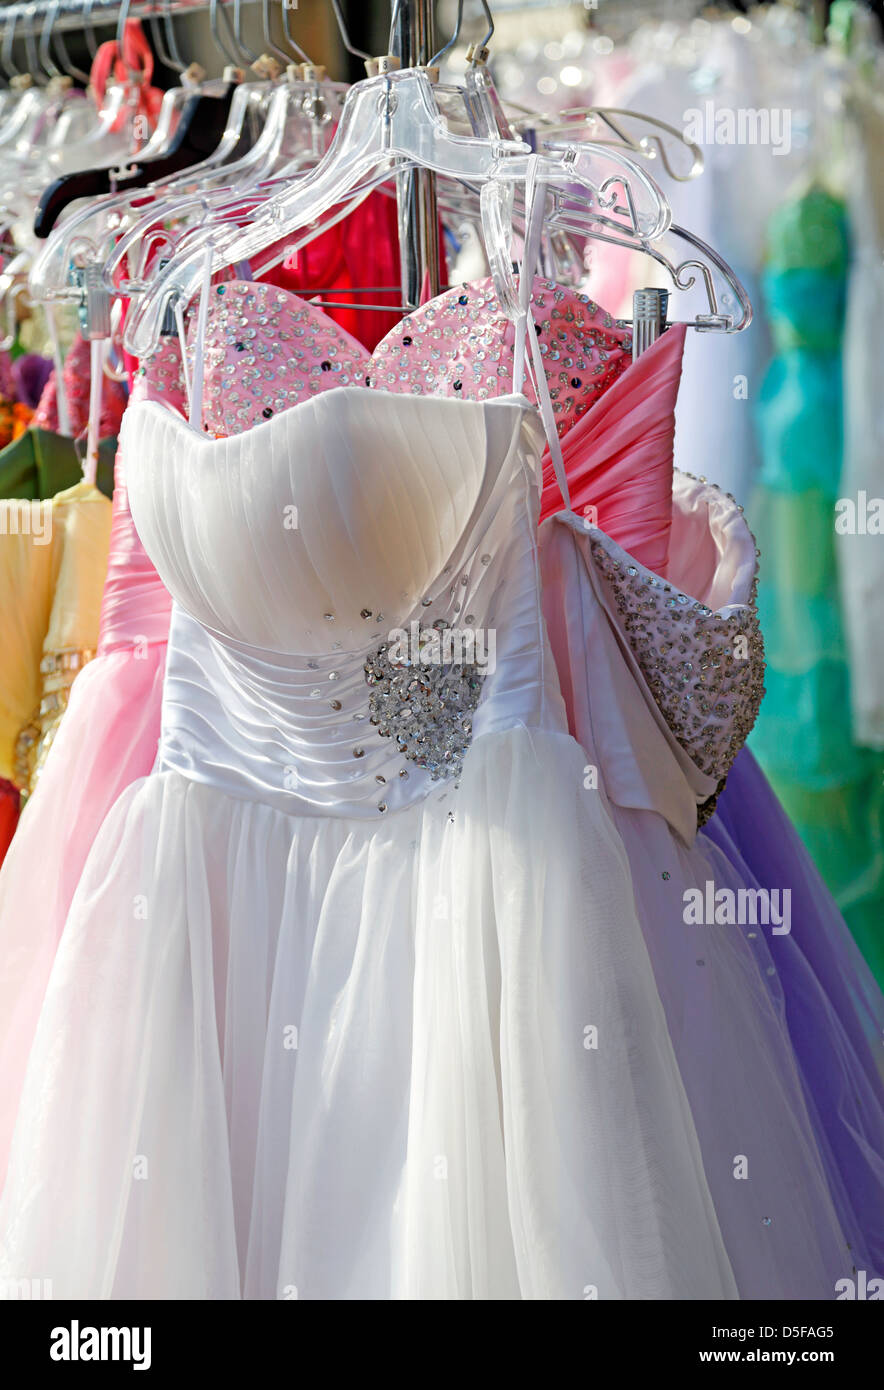 Evening Gowns Stock Photos & Evening Gowns Stock Images - Alamy